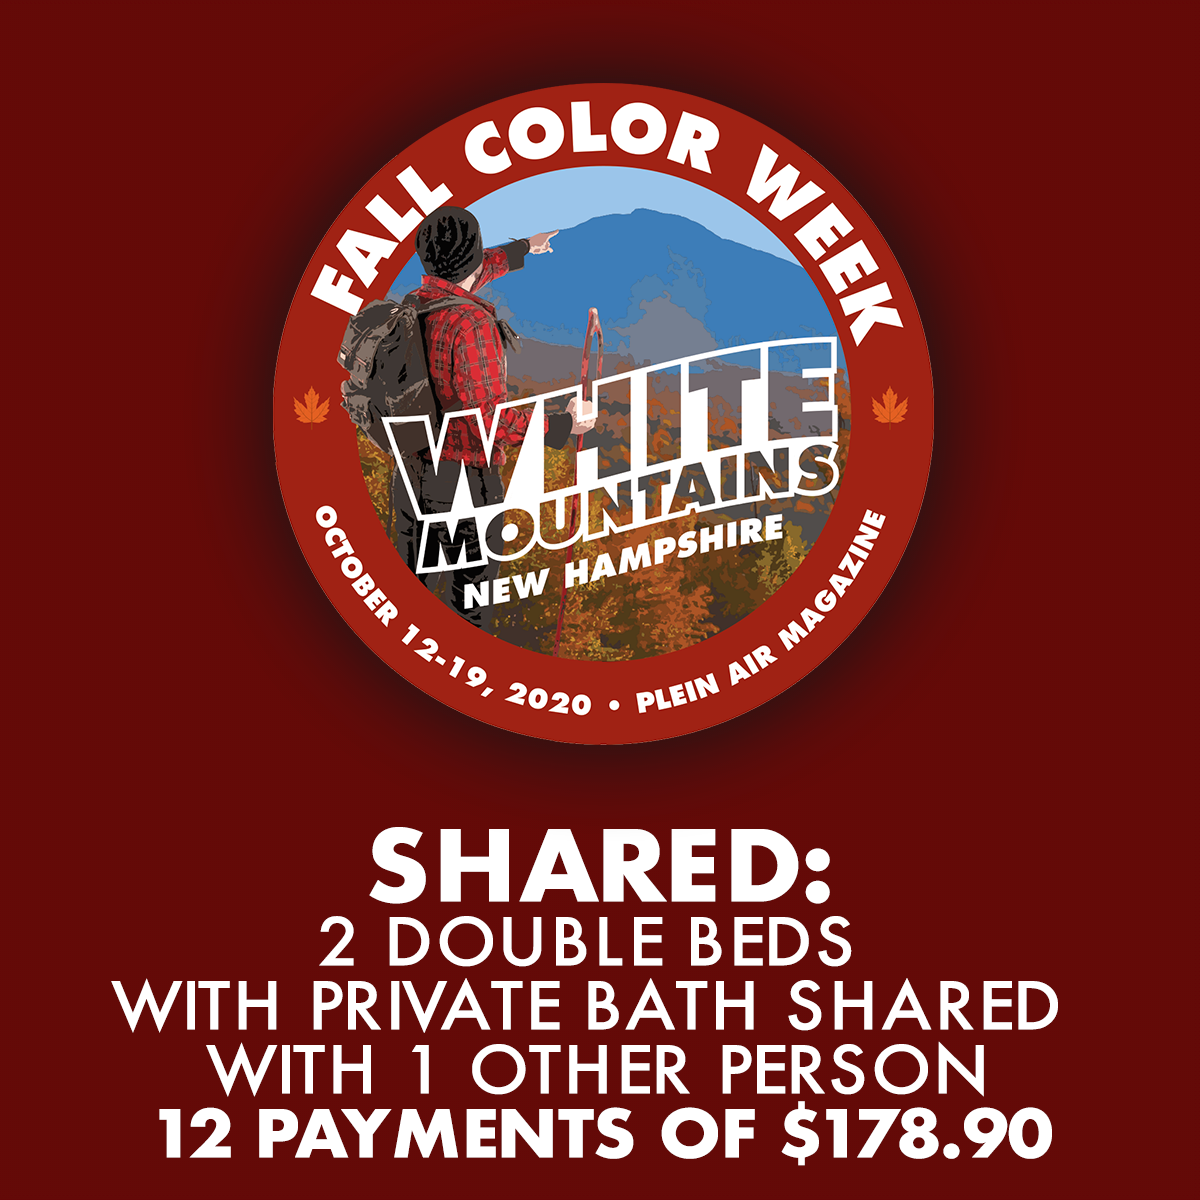 2020 Fall Color Week - Shared: 2 Double Beds with Private Bath Shared with 1 Other Person *** 12 PAYMENT PLAN ***